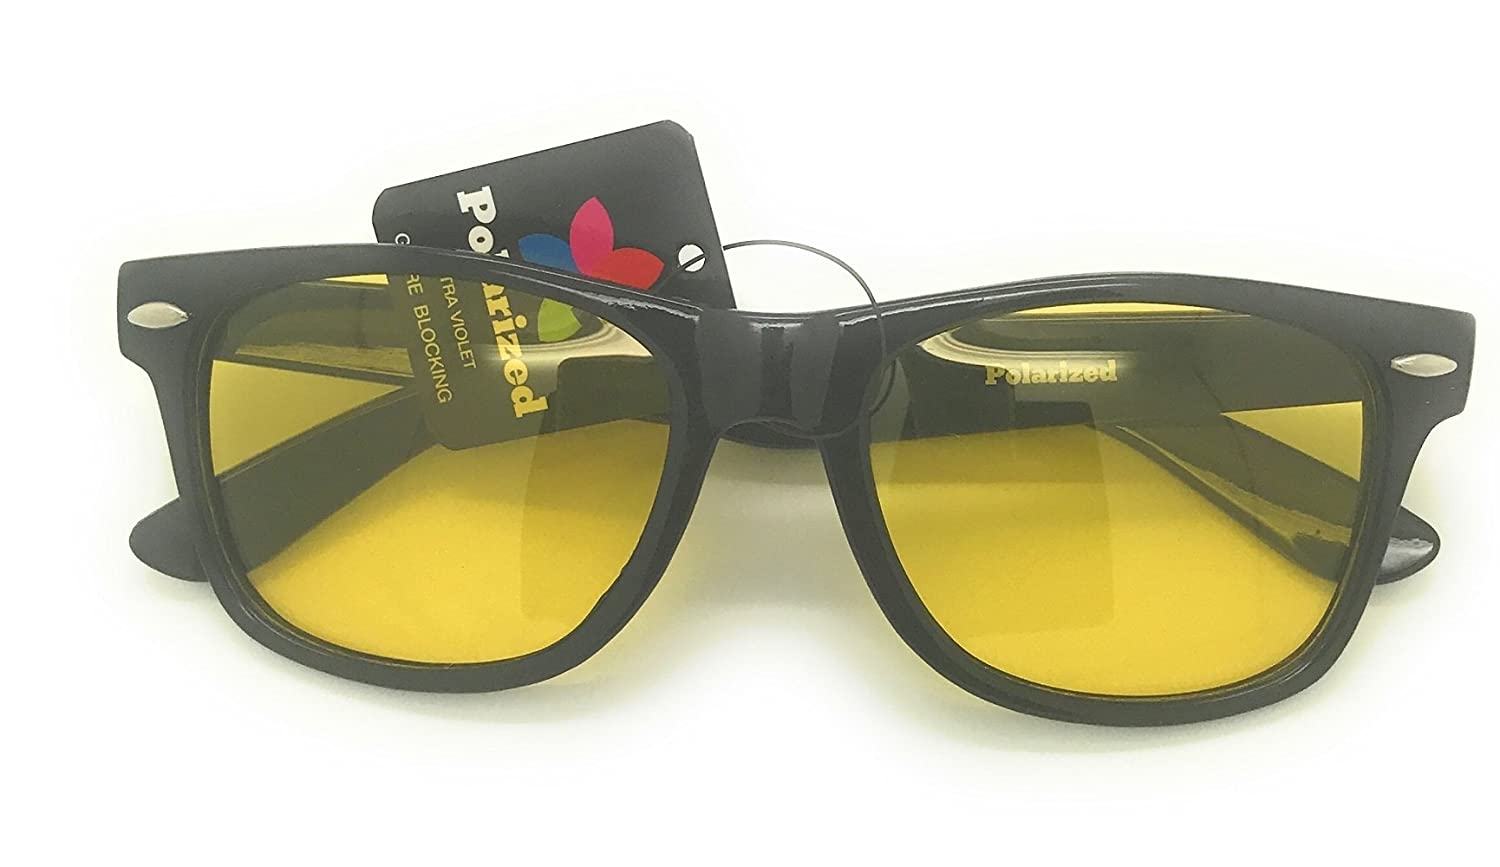 56683d7aab2 Wayfarer Sunglasses and Yellow Tinted Computer Glasses Eye Strain Perfect  for Gaming Anti Glare Night Driving Glasses Or Shooting Anti Blue Light  Rays ...